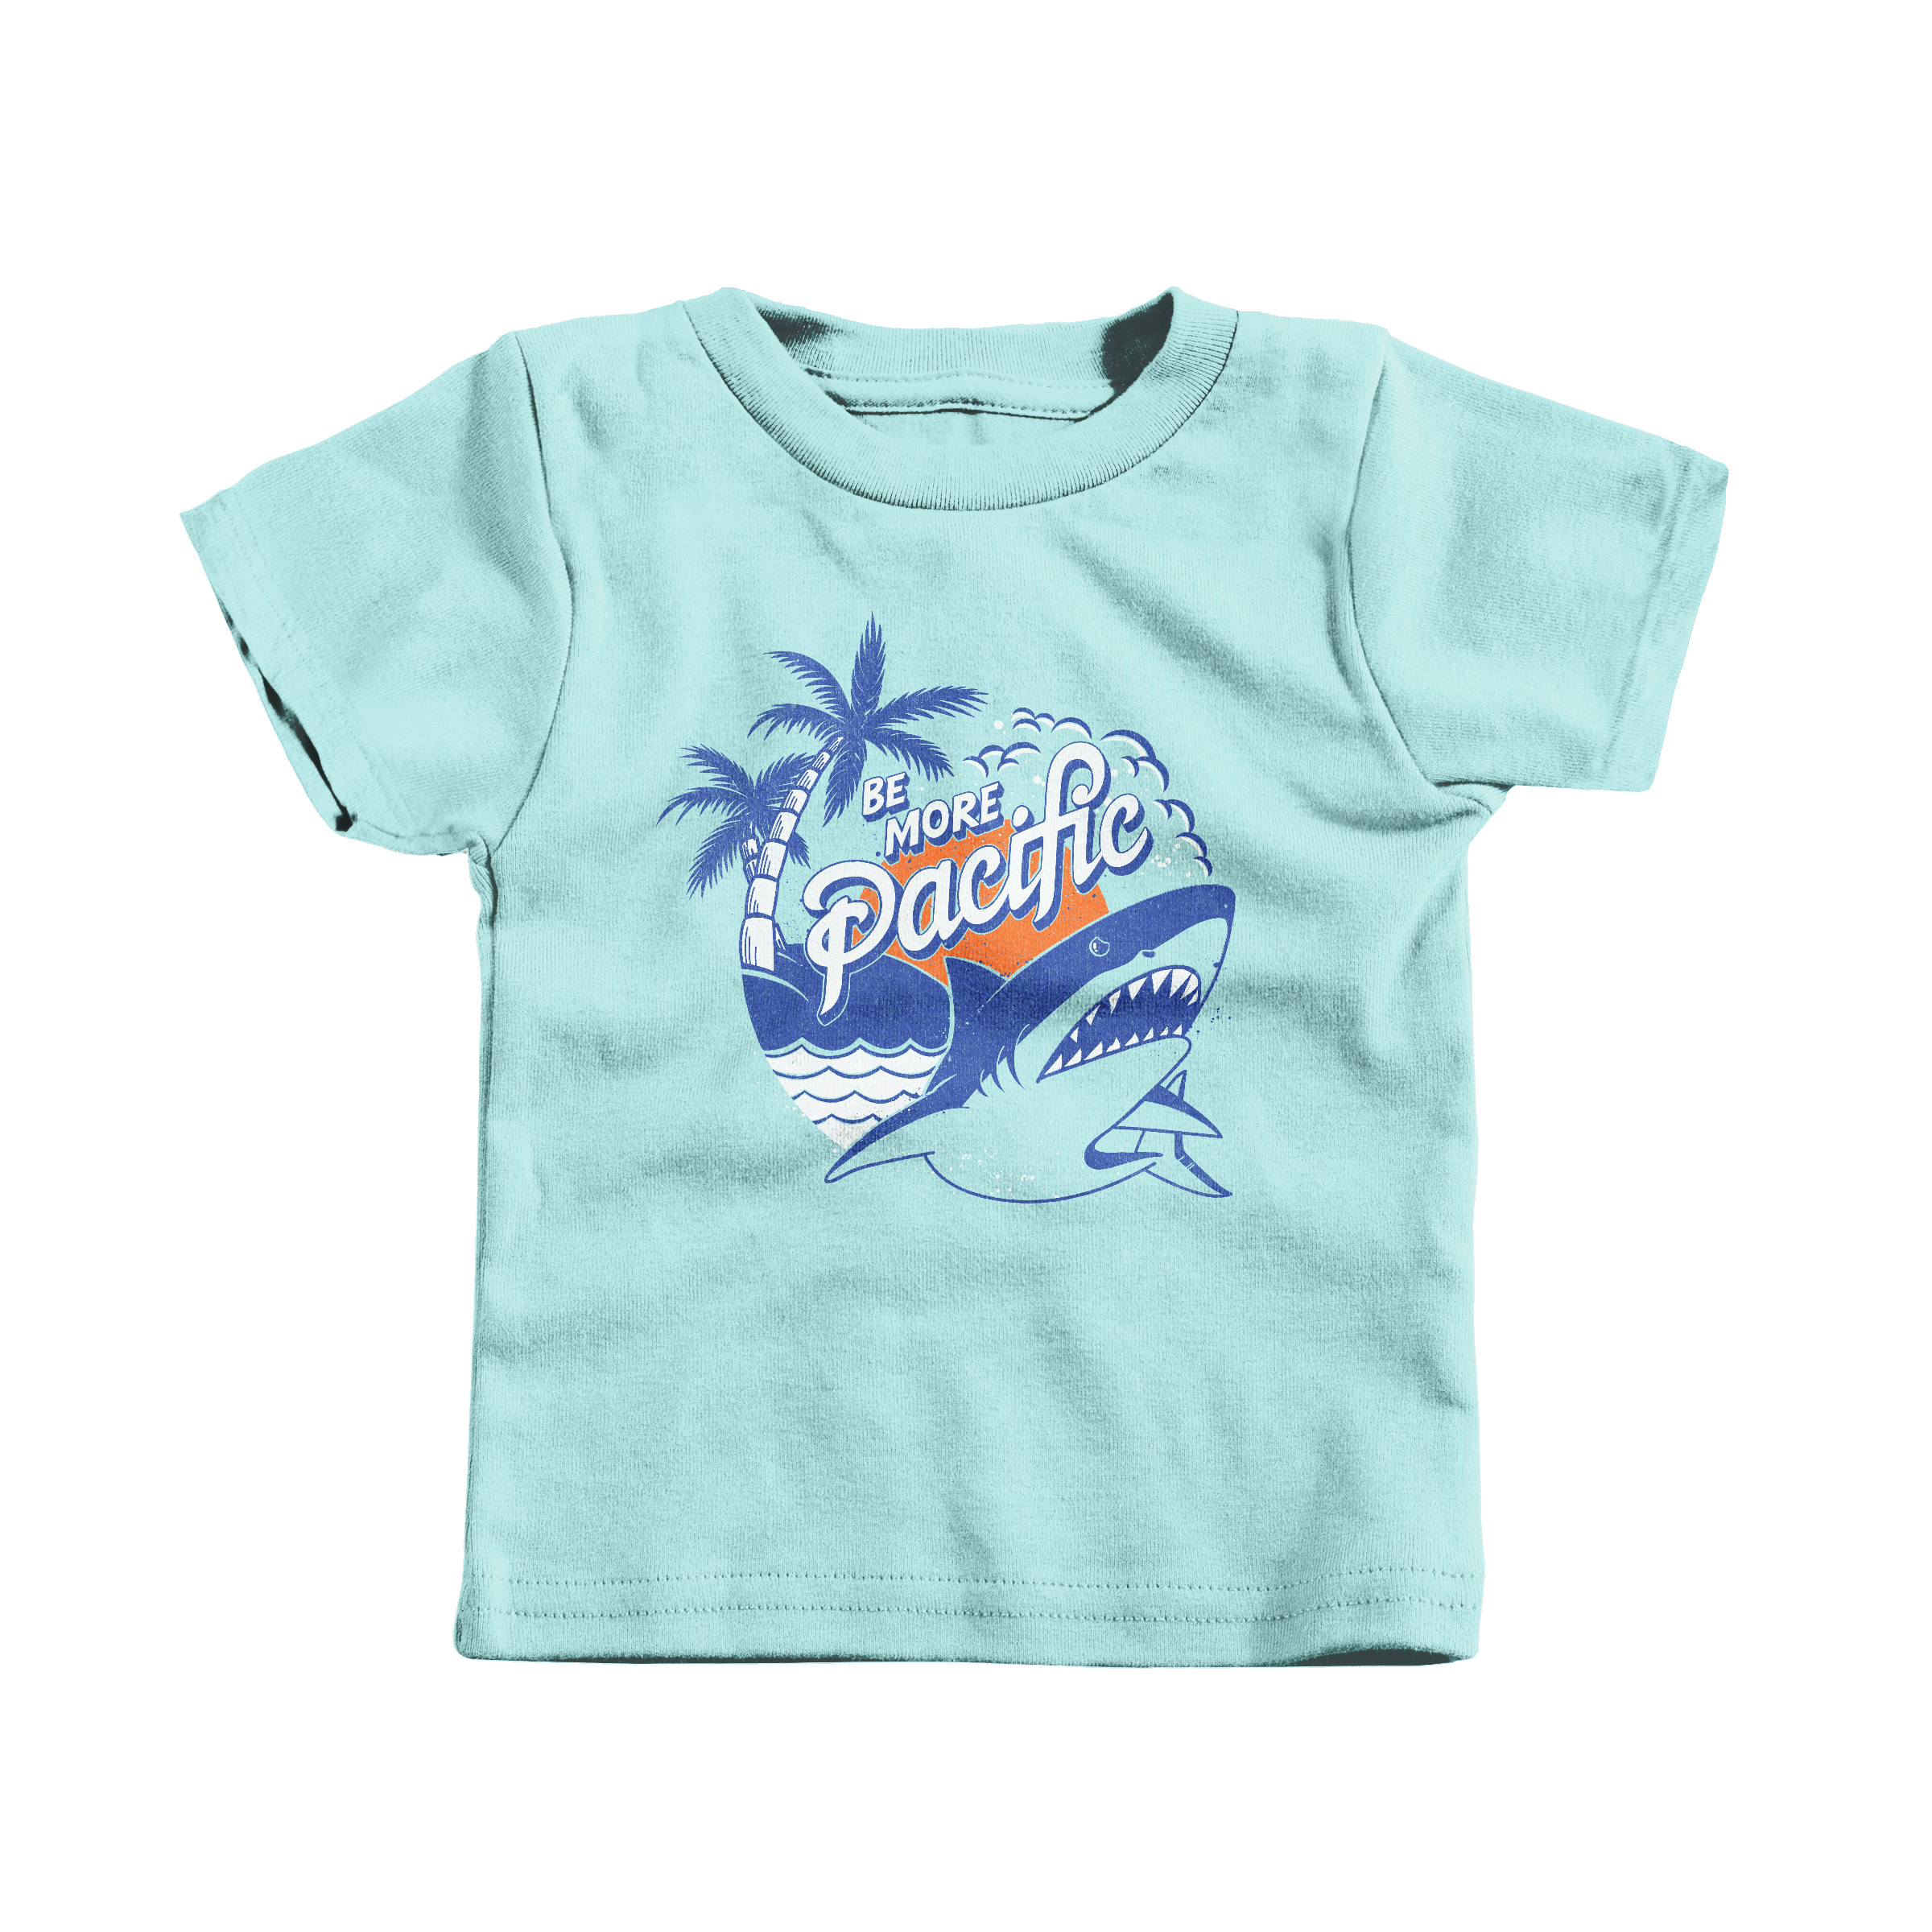 Be More Pacific Chill (T-Shirt)